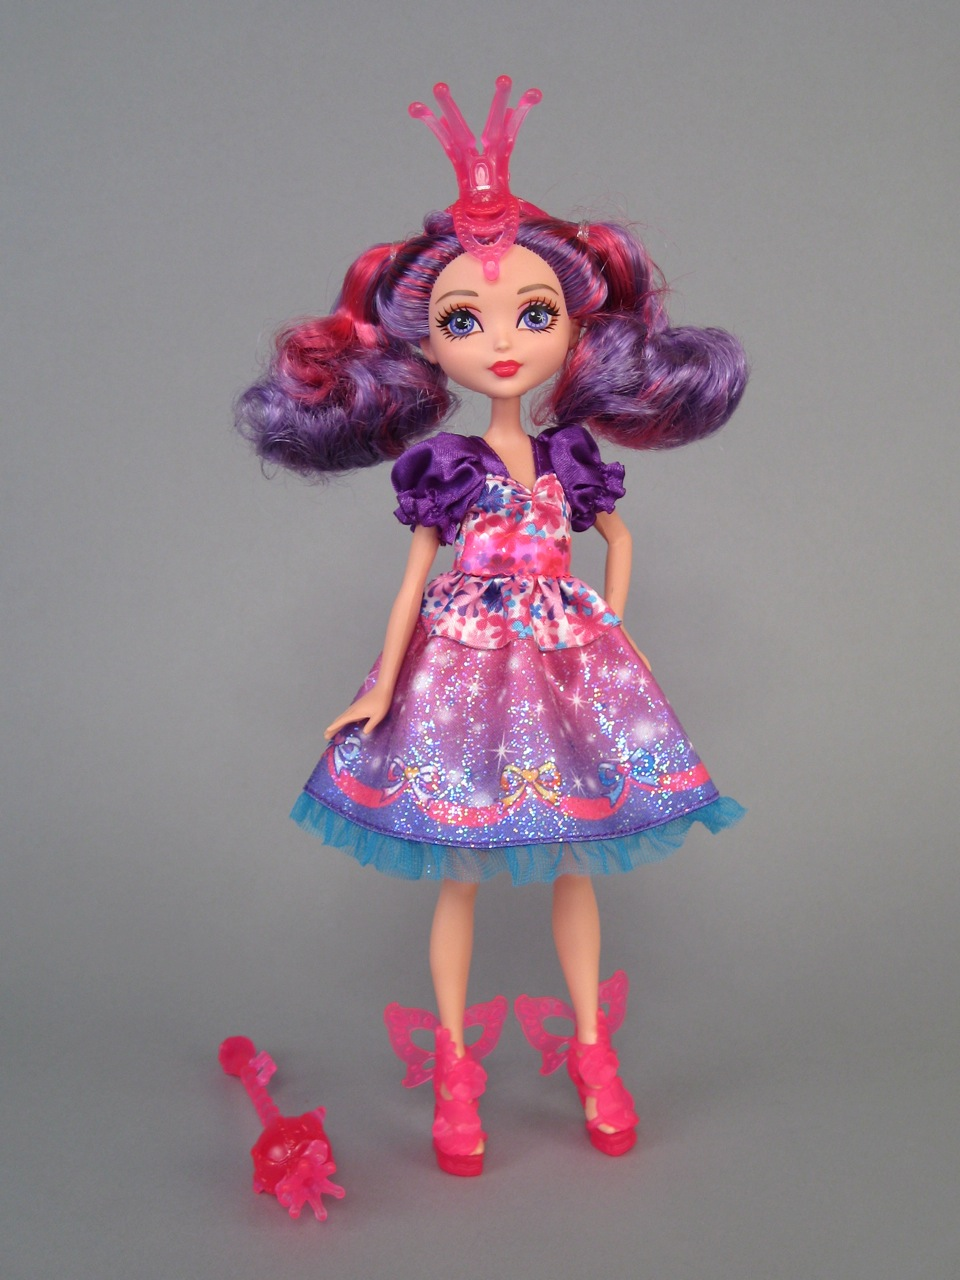 Barbie Princess Malucia doll